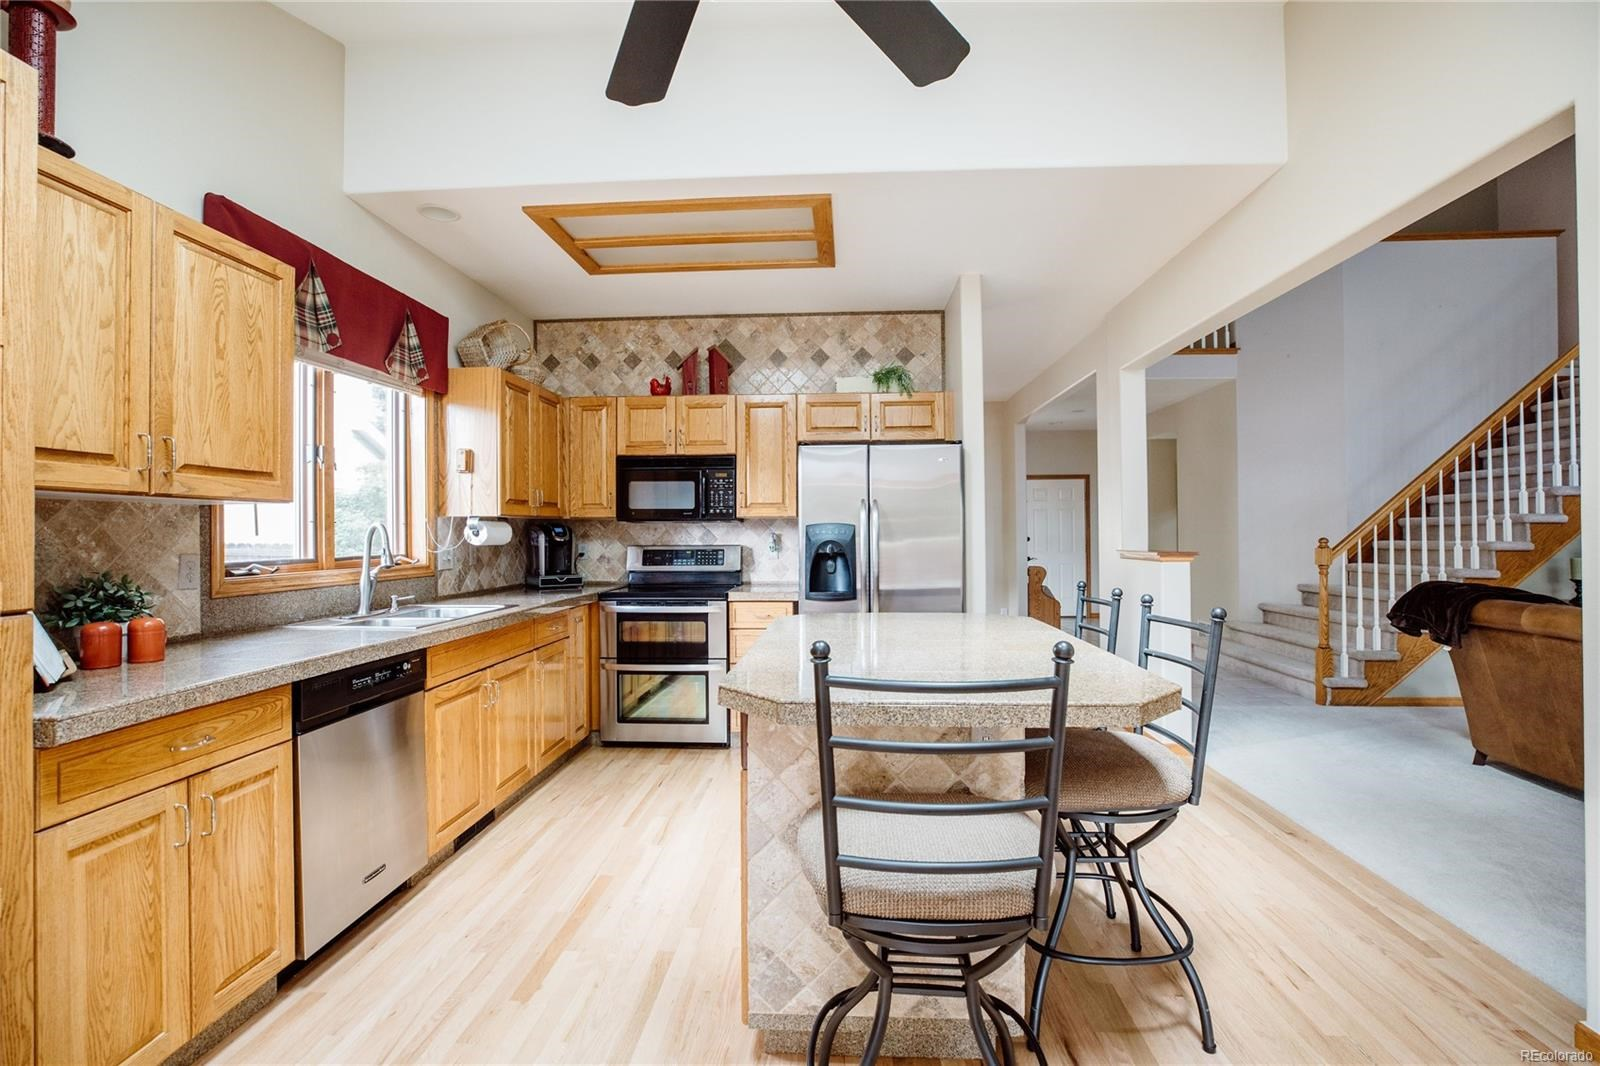 MLS# 4033949 - 16 - 3713 Ashmount Drive, Fort Collins, CO 80525